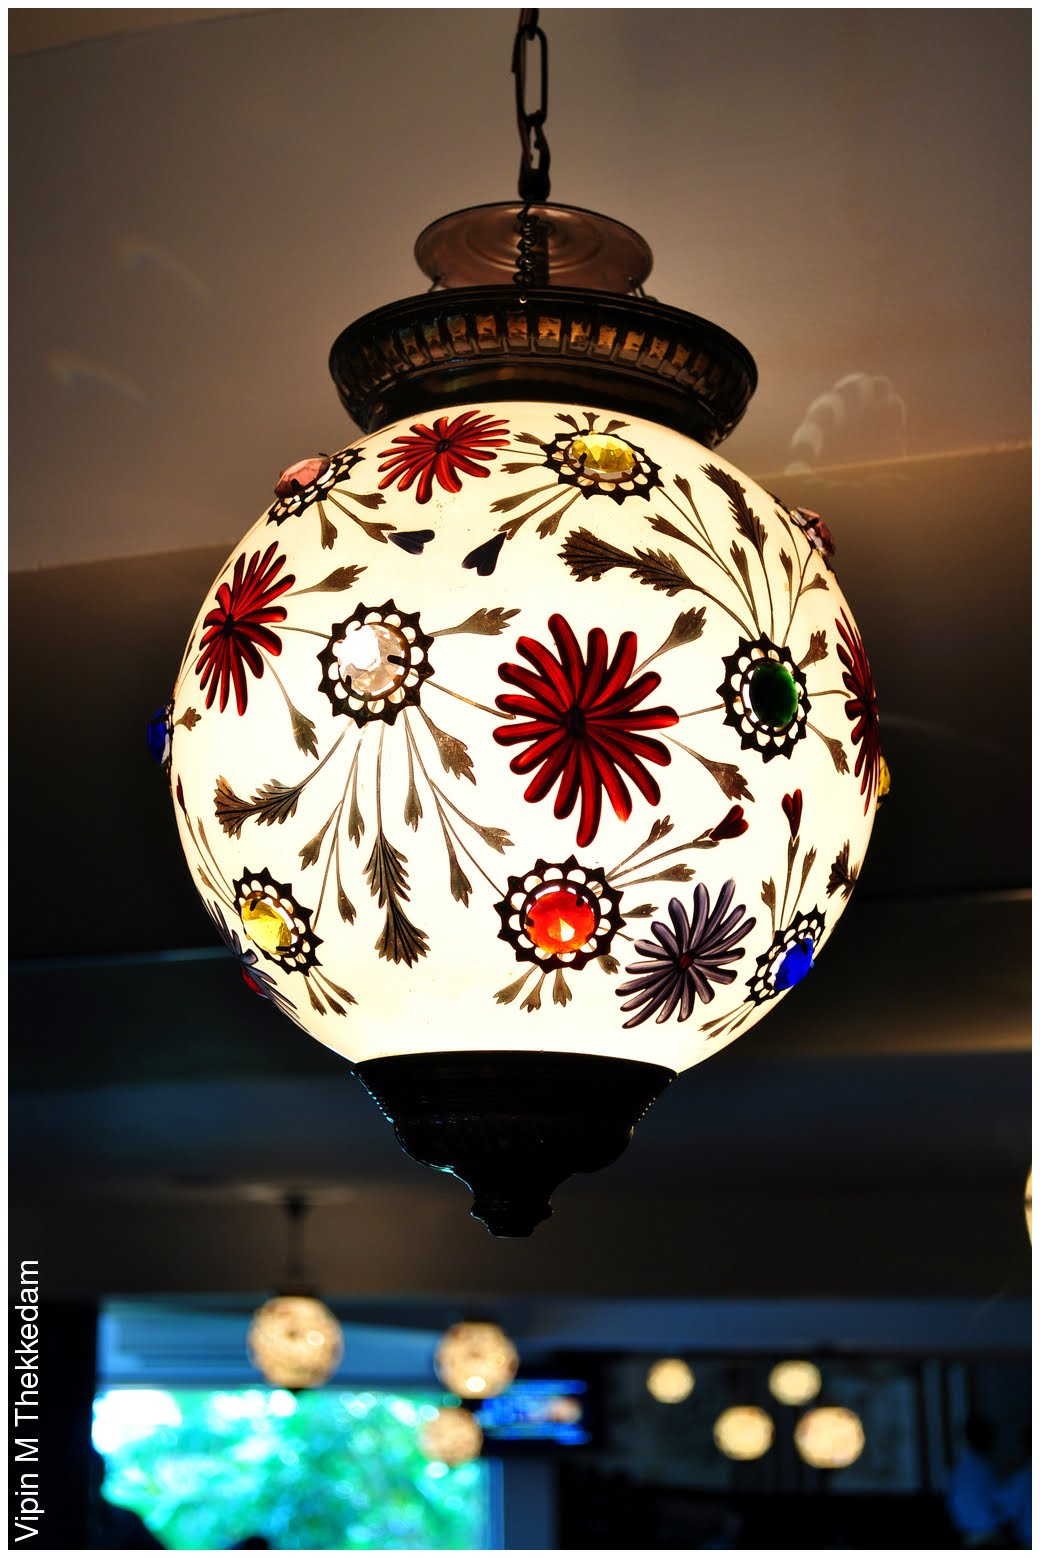 Flowered ceiling lamp